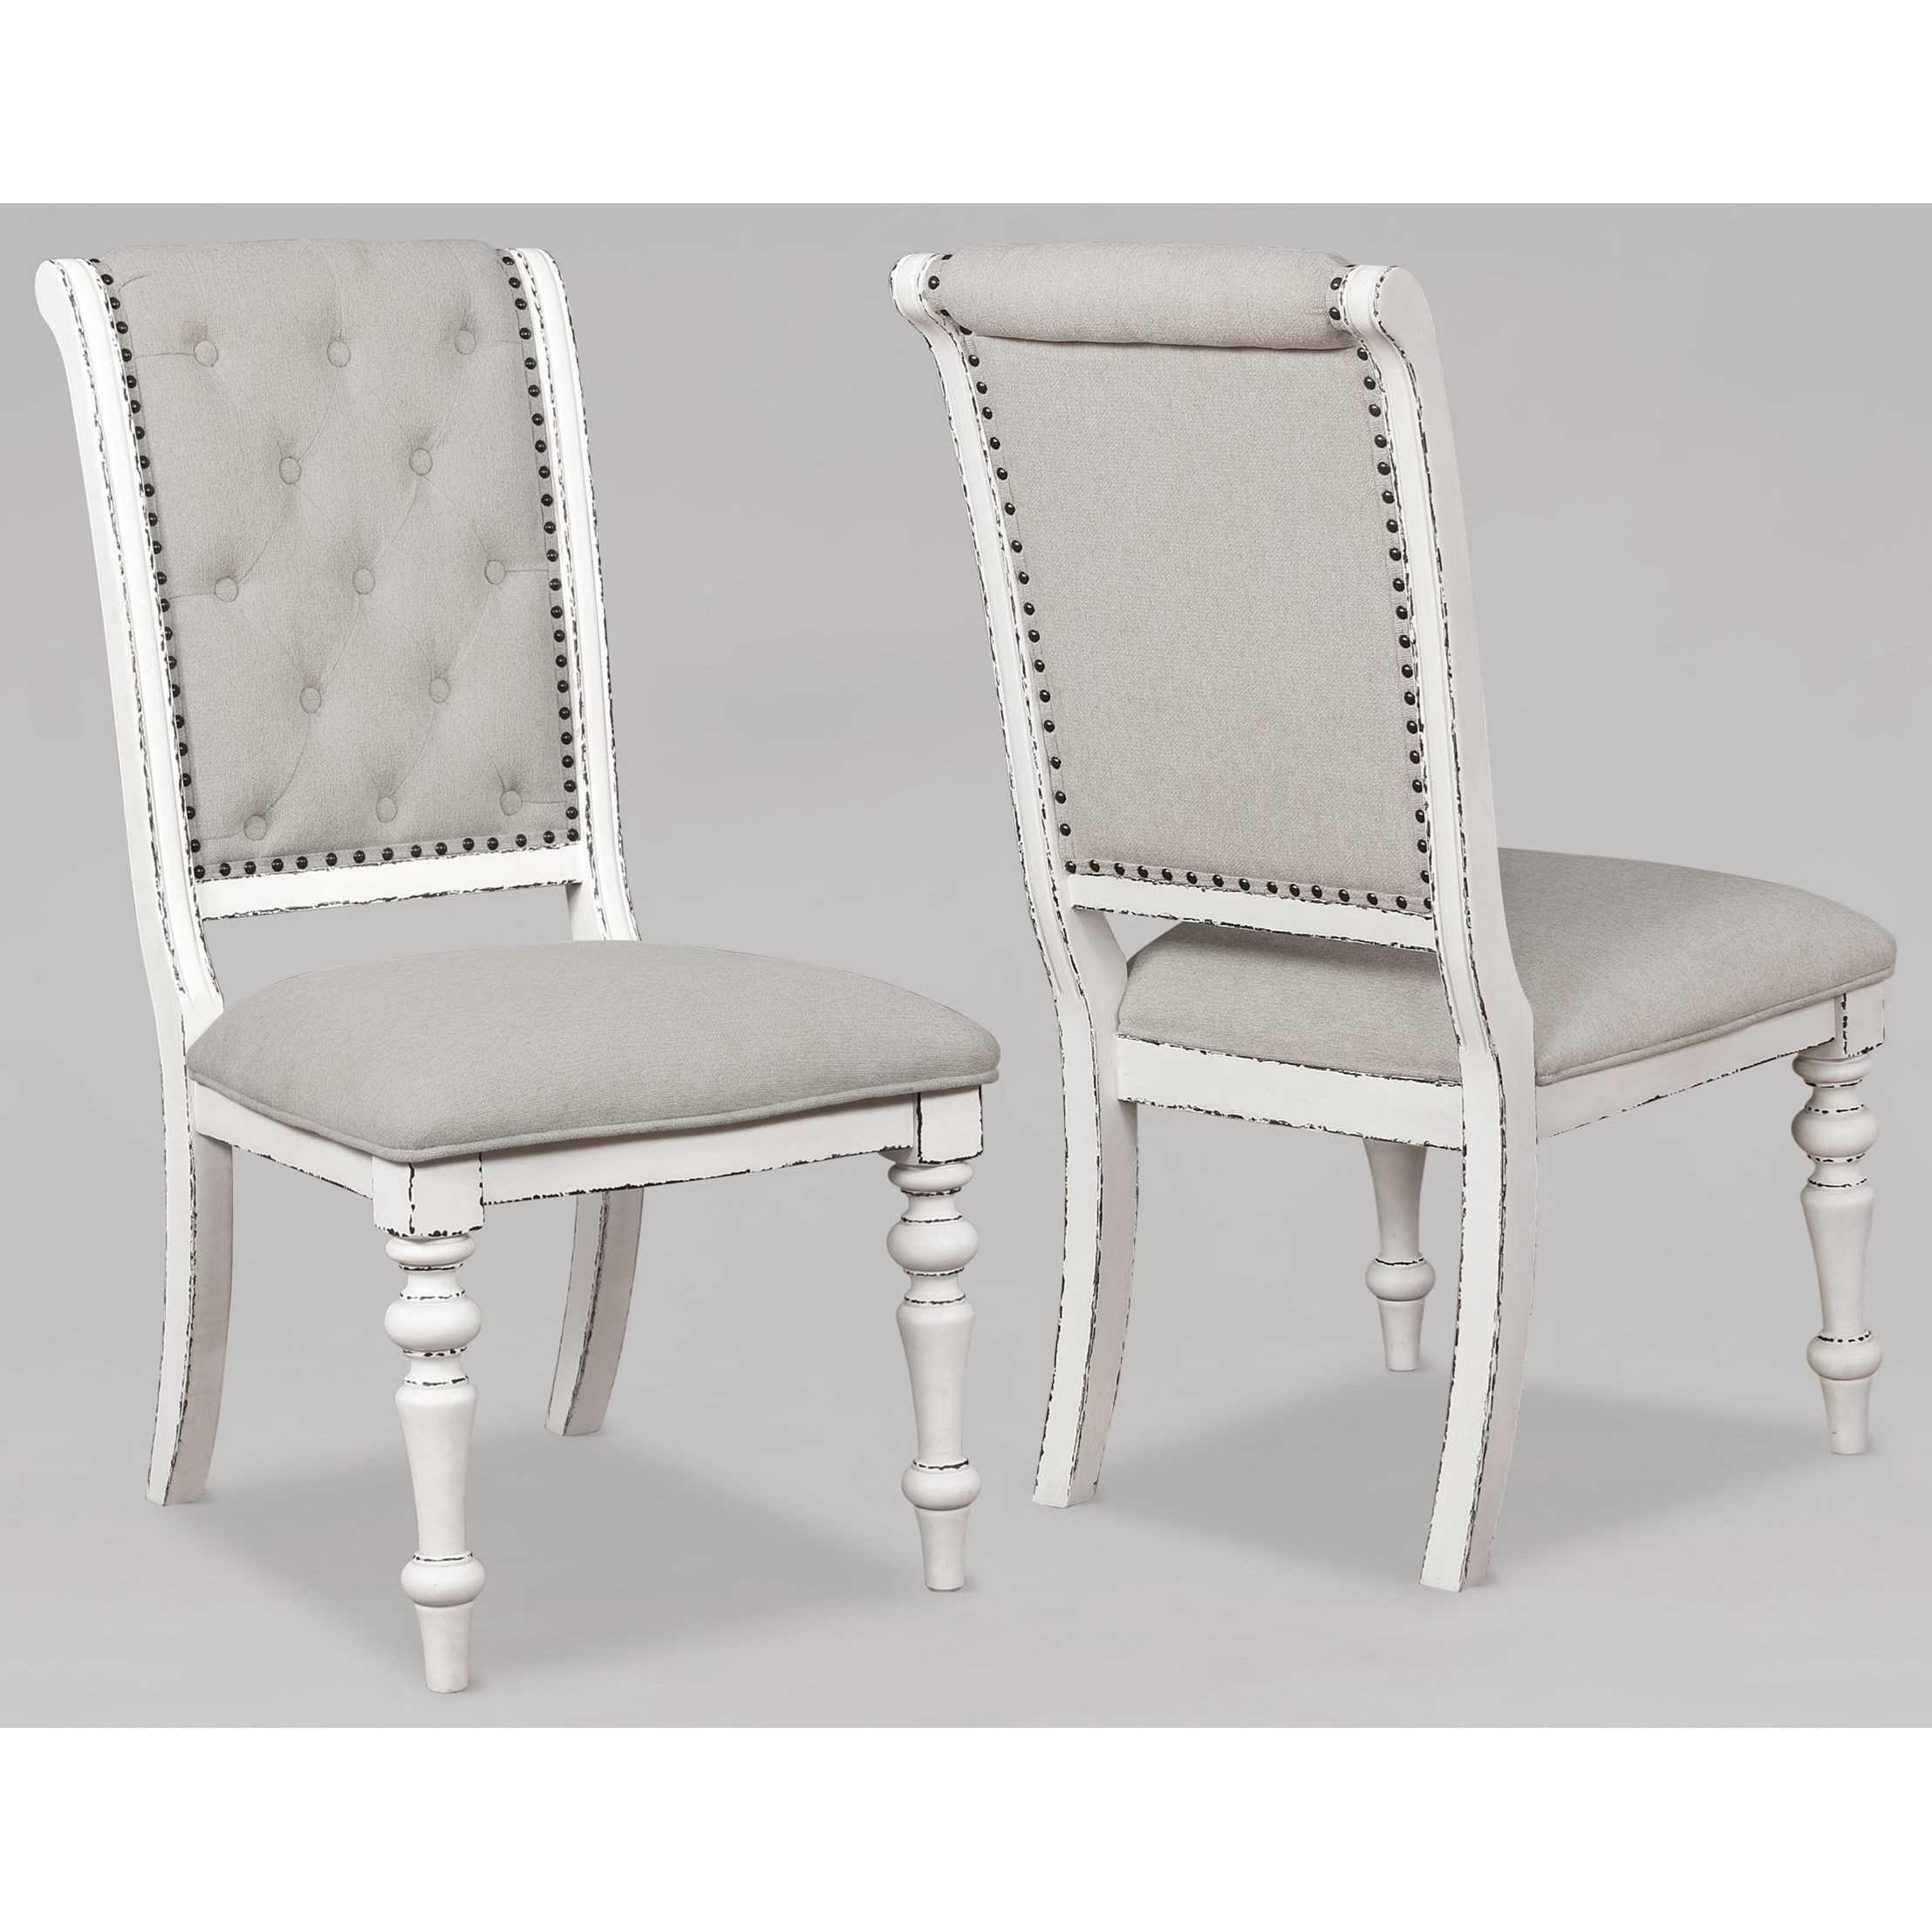 Cottage Dining Side Chair with Button Tufted Upholstery